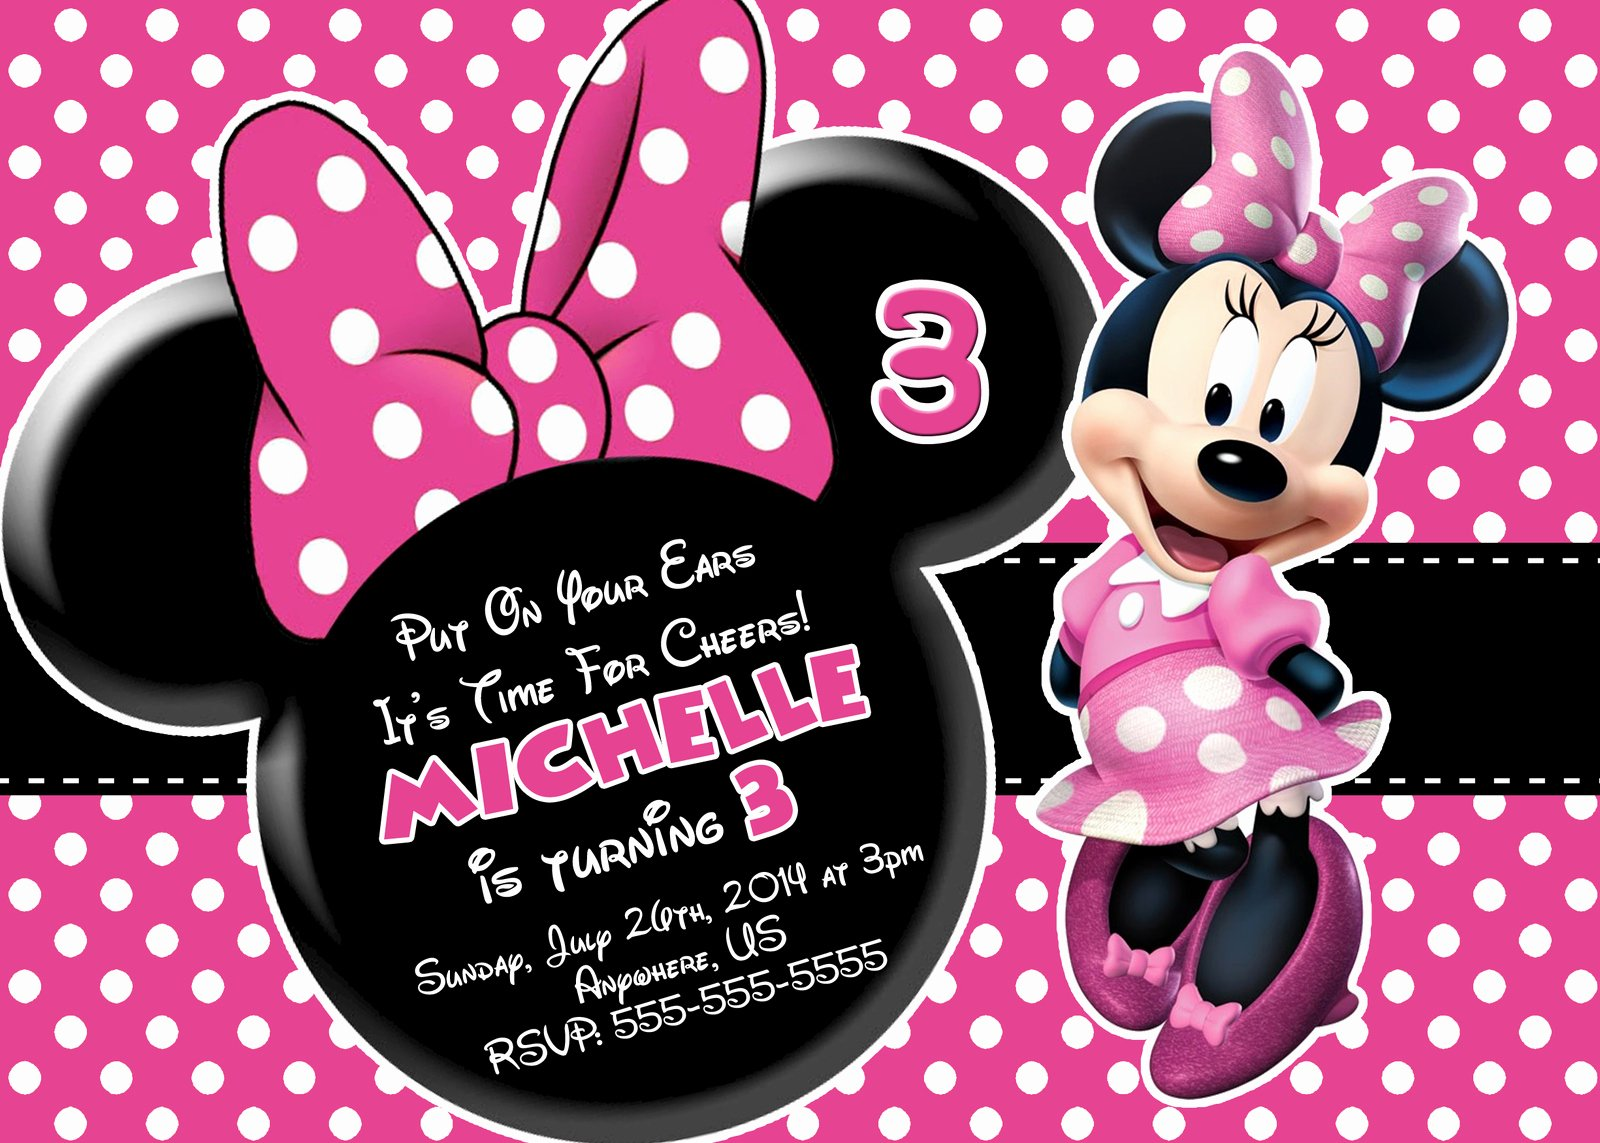 Minnie Mouse Invitation Template Best Of Free Minnie Mouse Printable Birthday Invitations